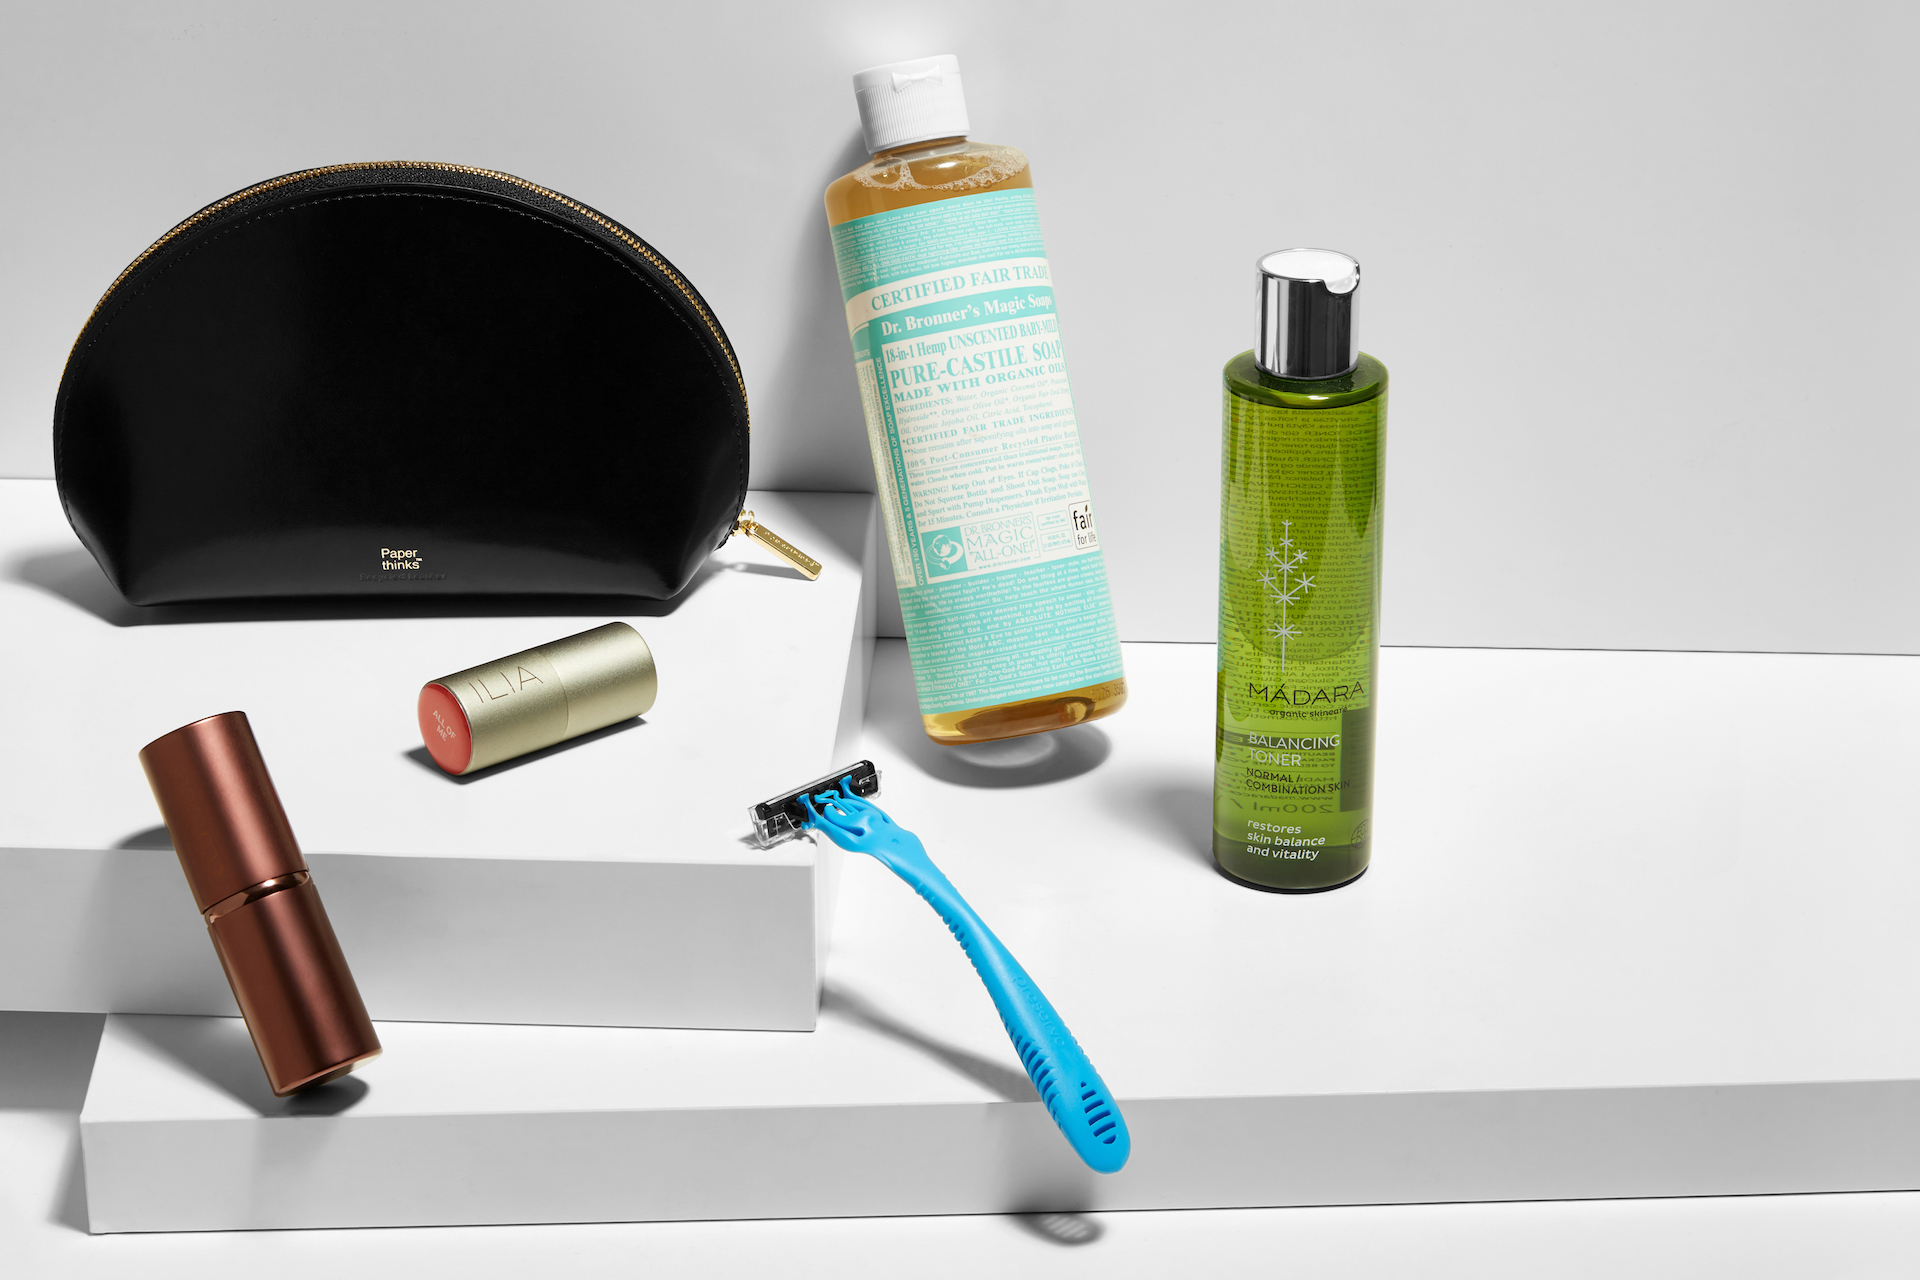 Organic Beauty Products >> Organic Beauty Products With Recycled Packaging That Can Be